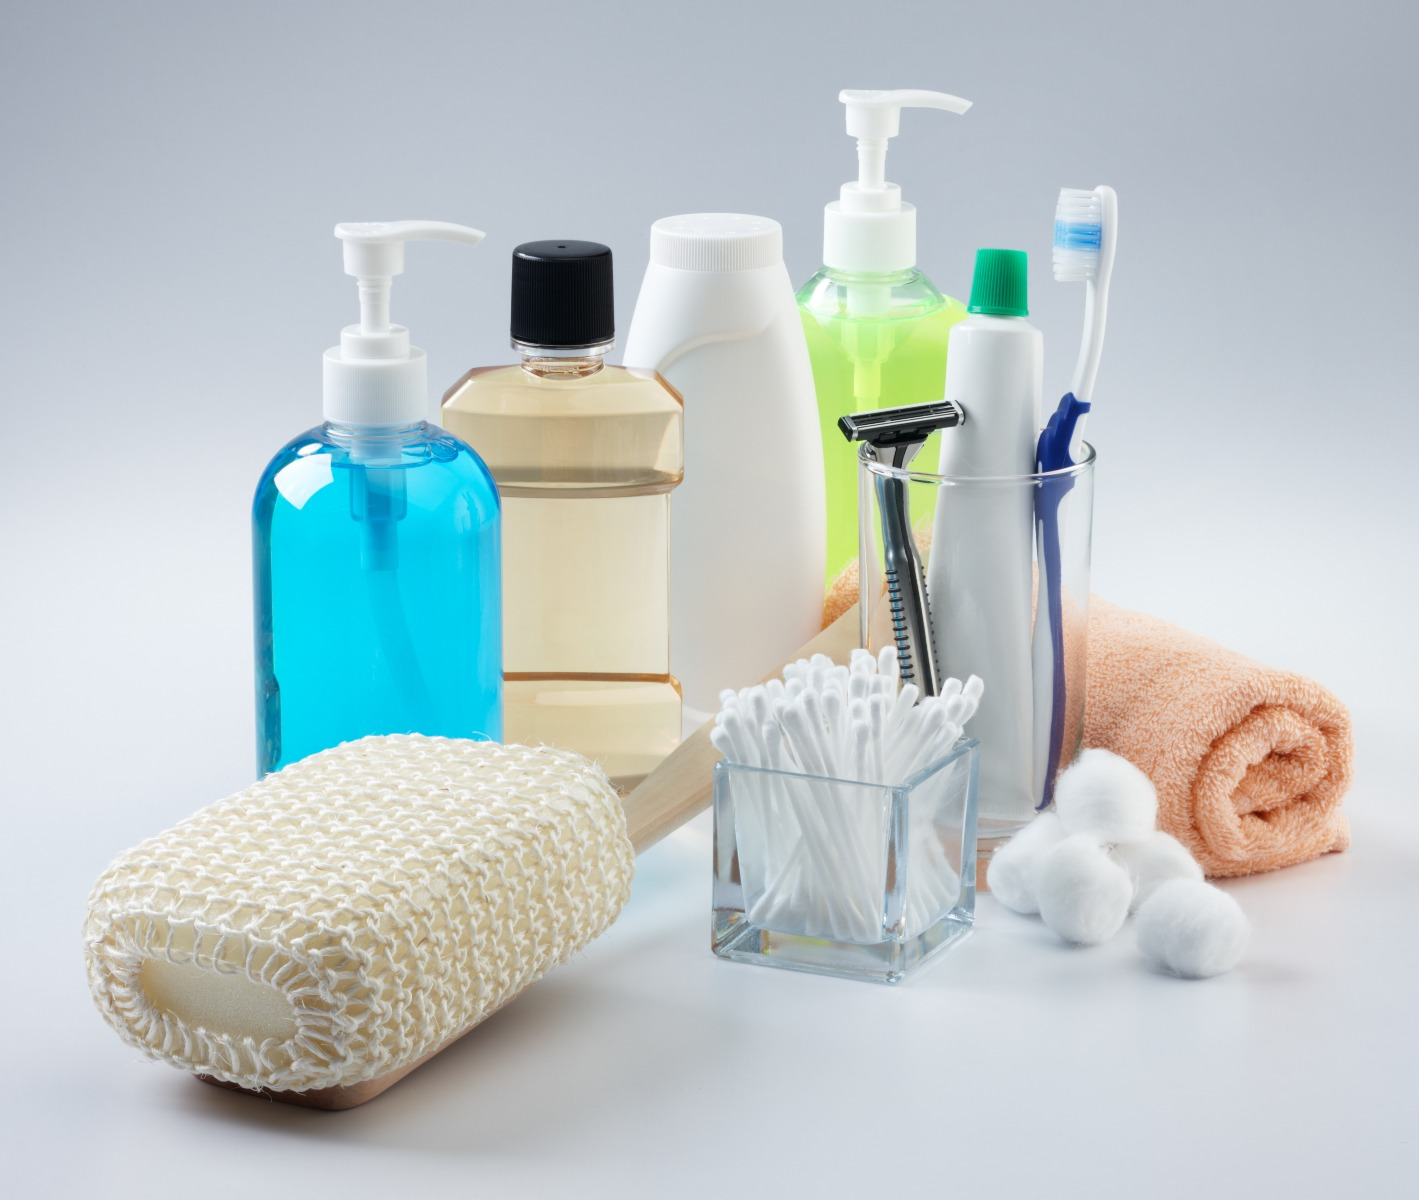 Assorted toiletries.